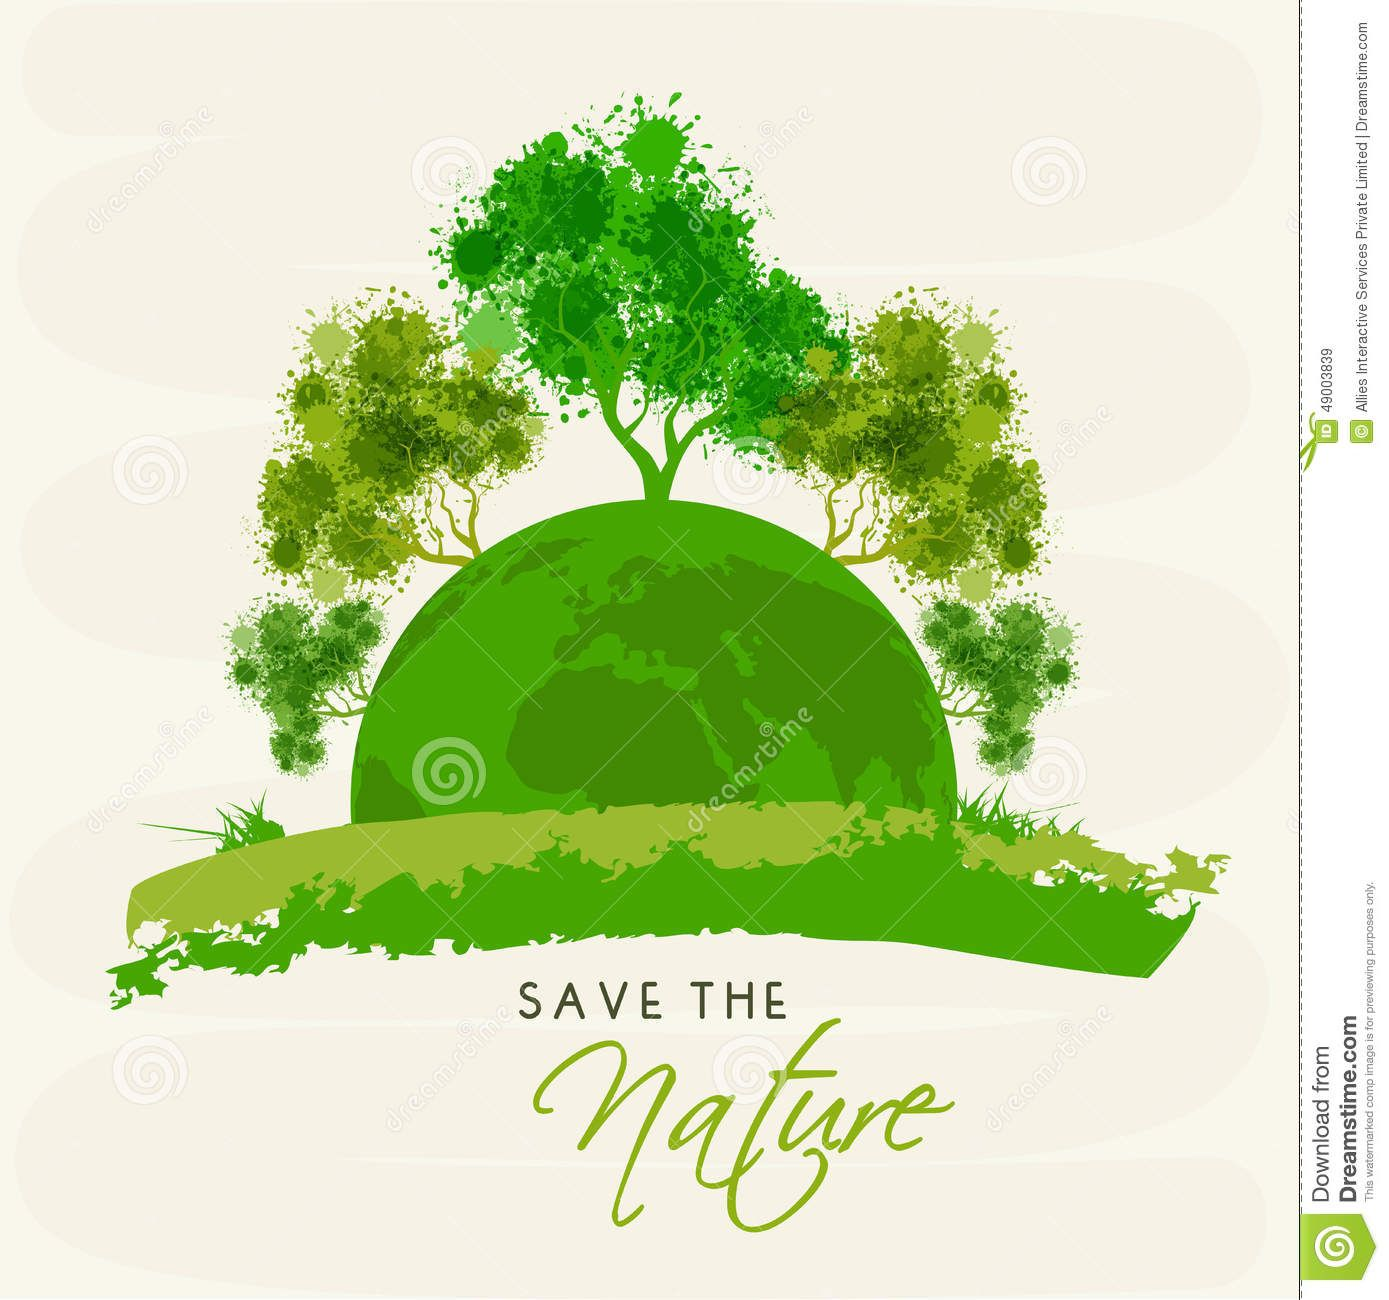 Save nature save earth drawings